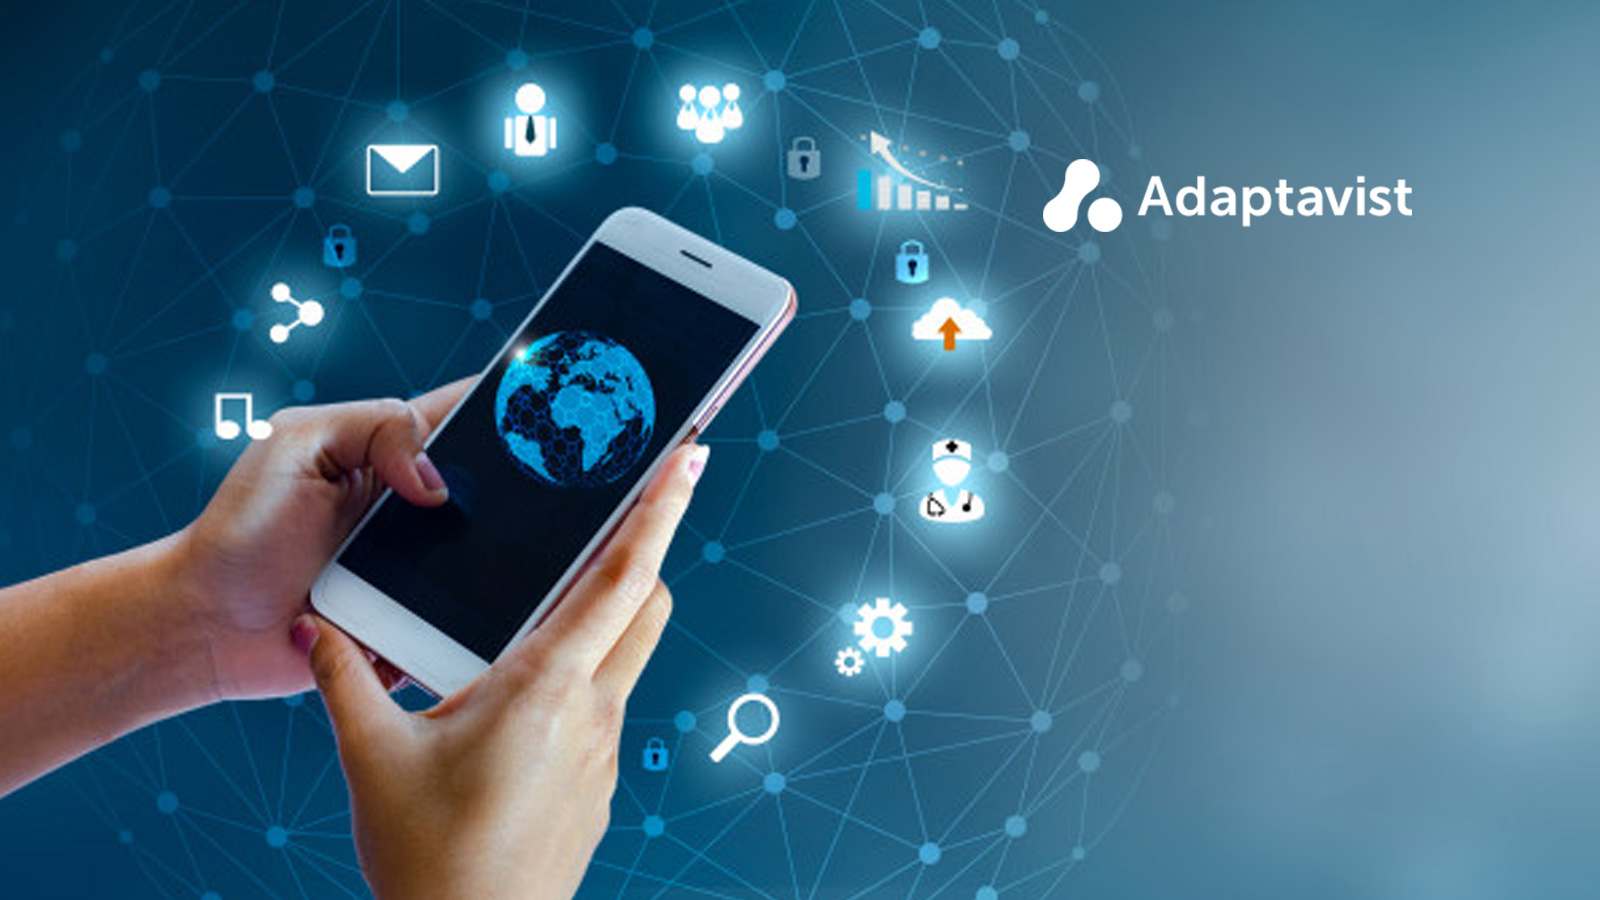 ddb9c49c769 Adaptavist Positions Itself as the Largest Independent Atlassian Solution  Partner Committed to Digital Transformation